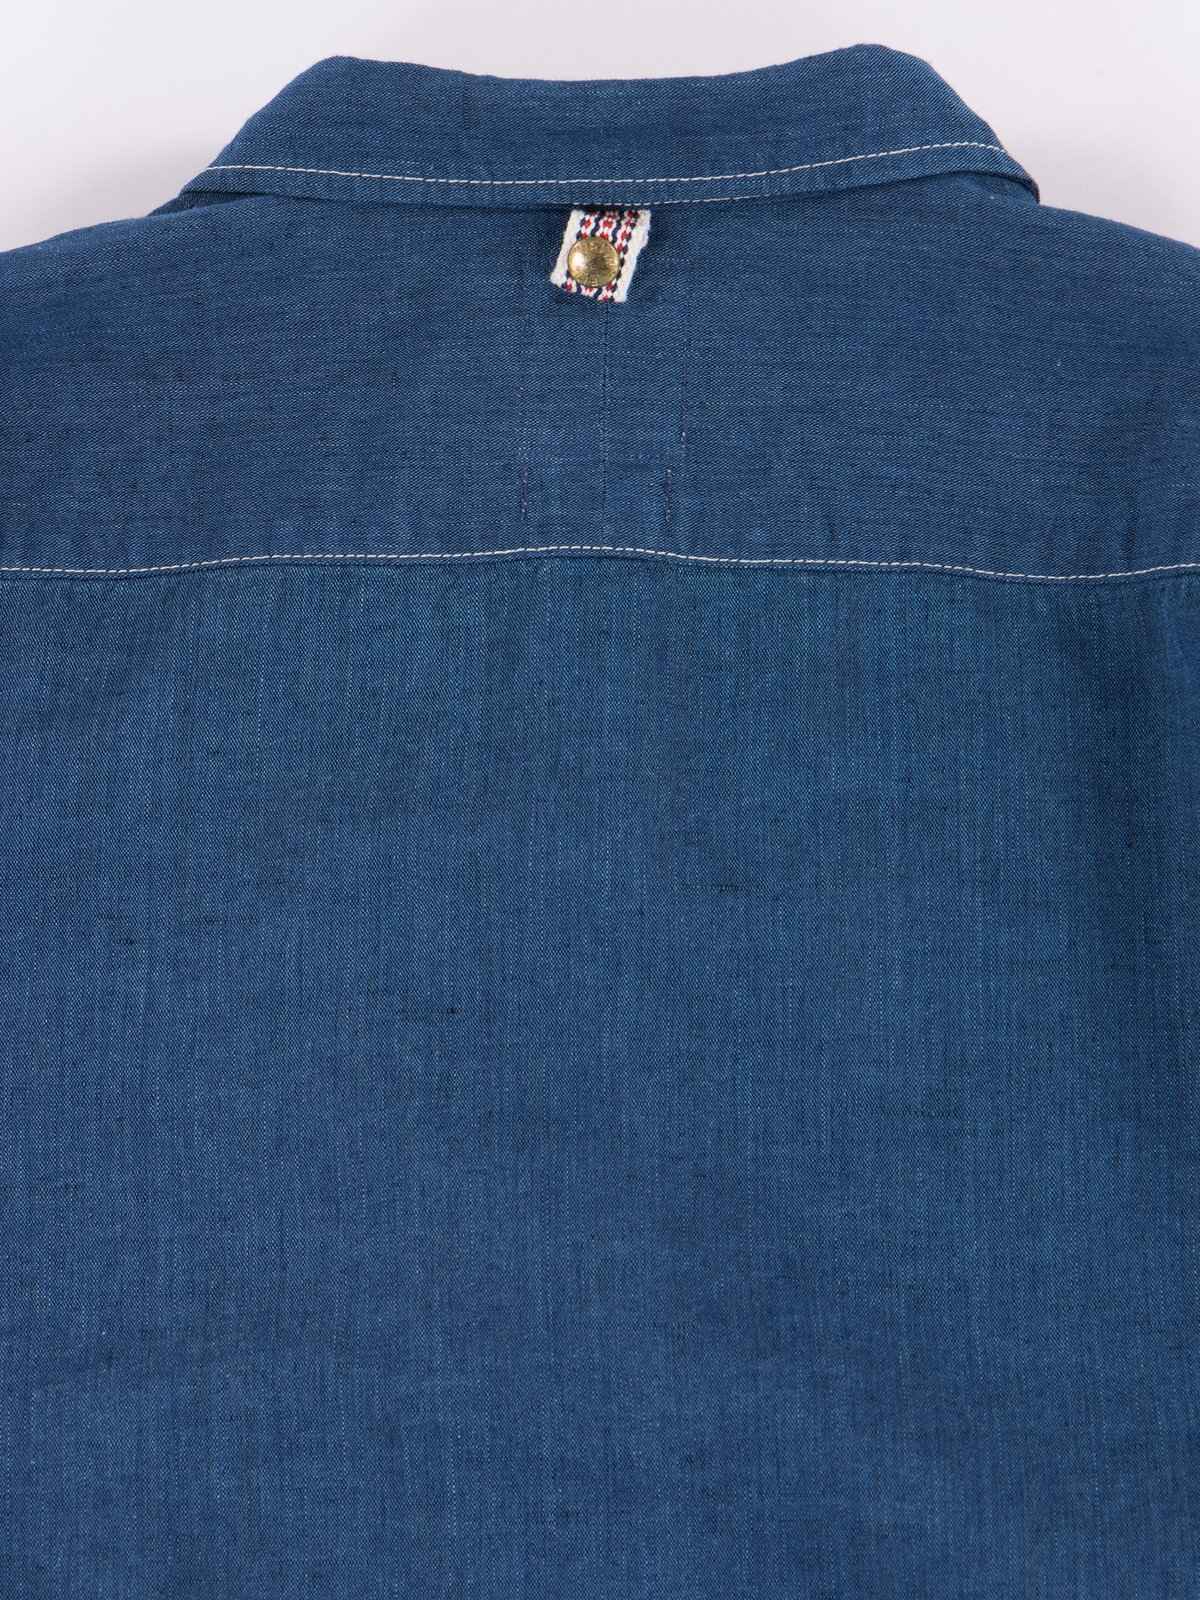 Navy Chambray Kerchief Tunic Shirt - Image 5